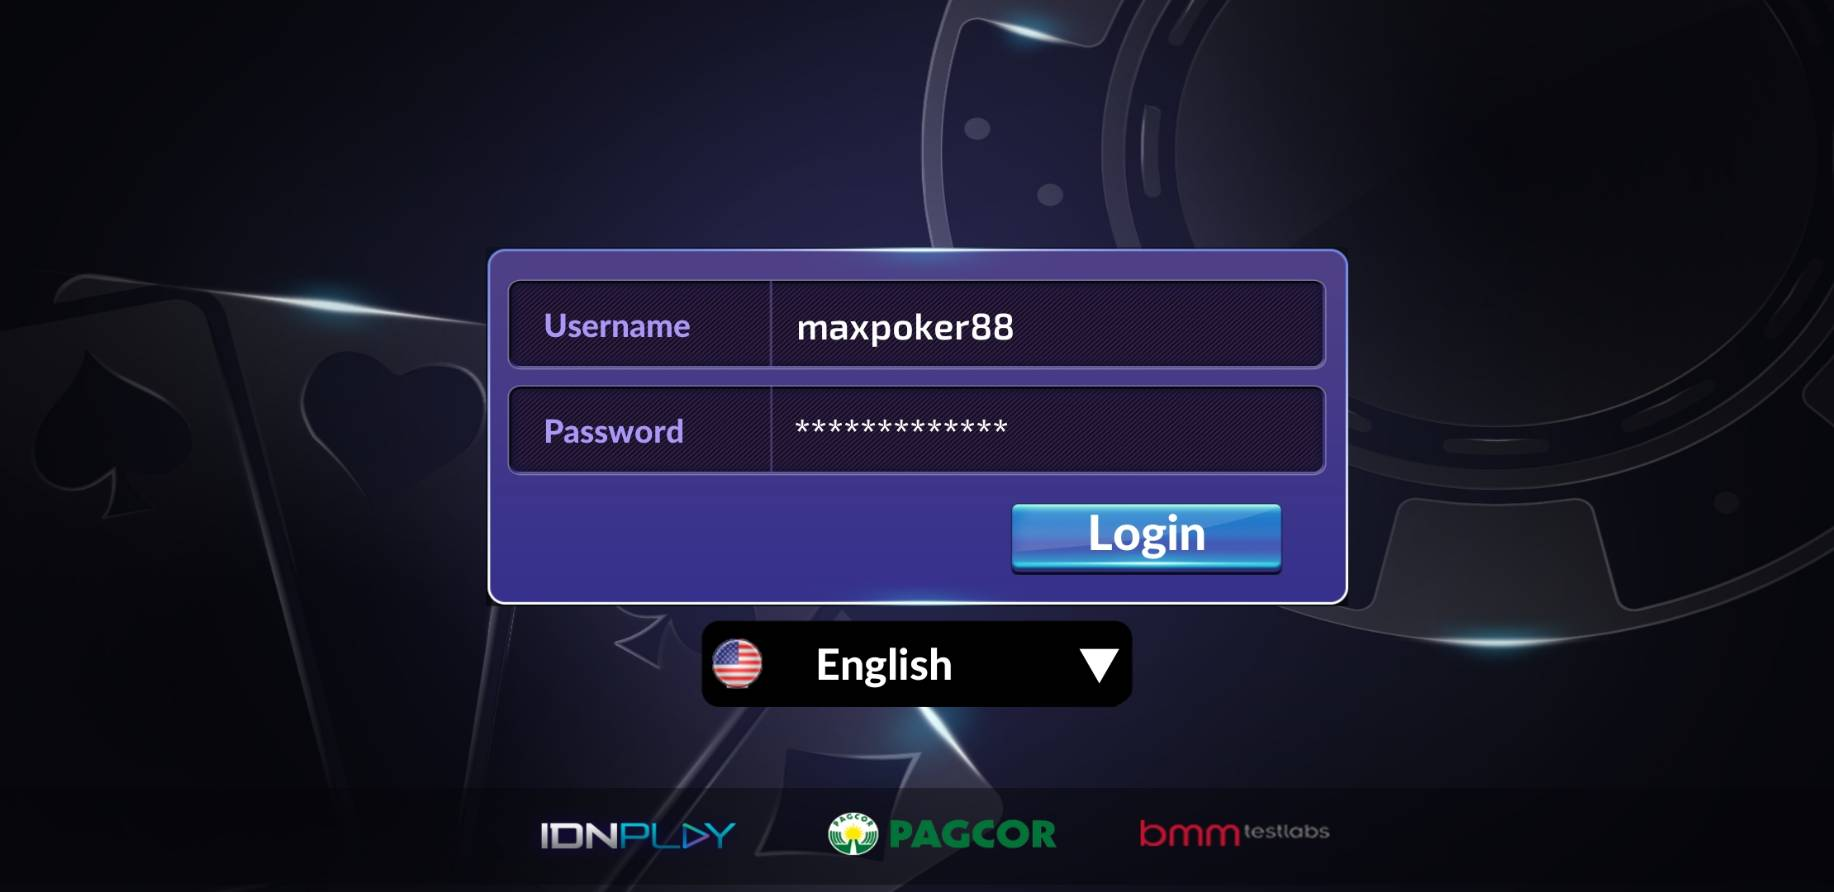 idn poker apk login android